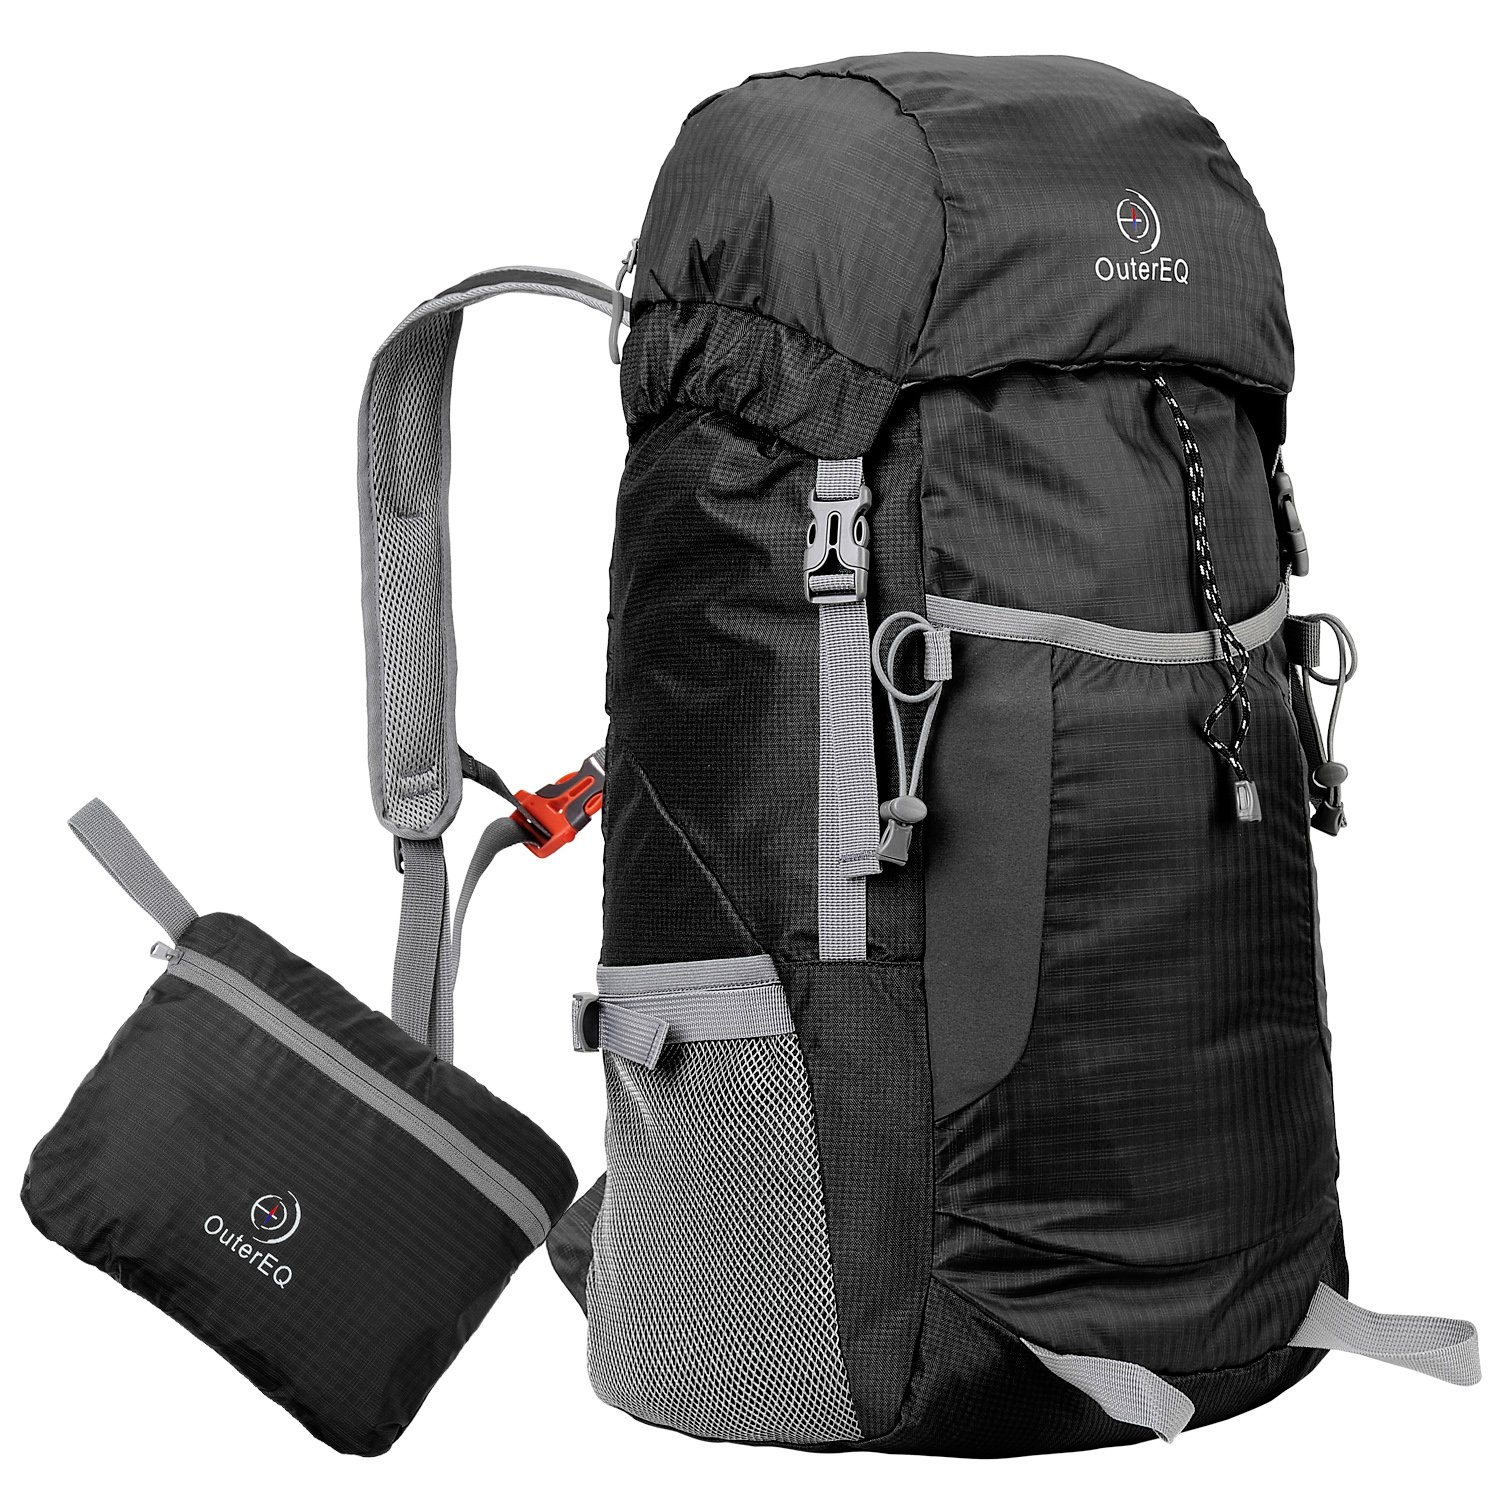 OuterEQ 38L Packable Travel Backpack Daypack For Camping & Hiking cheap